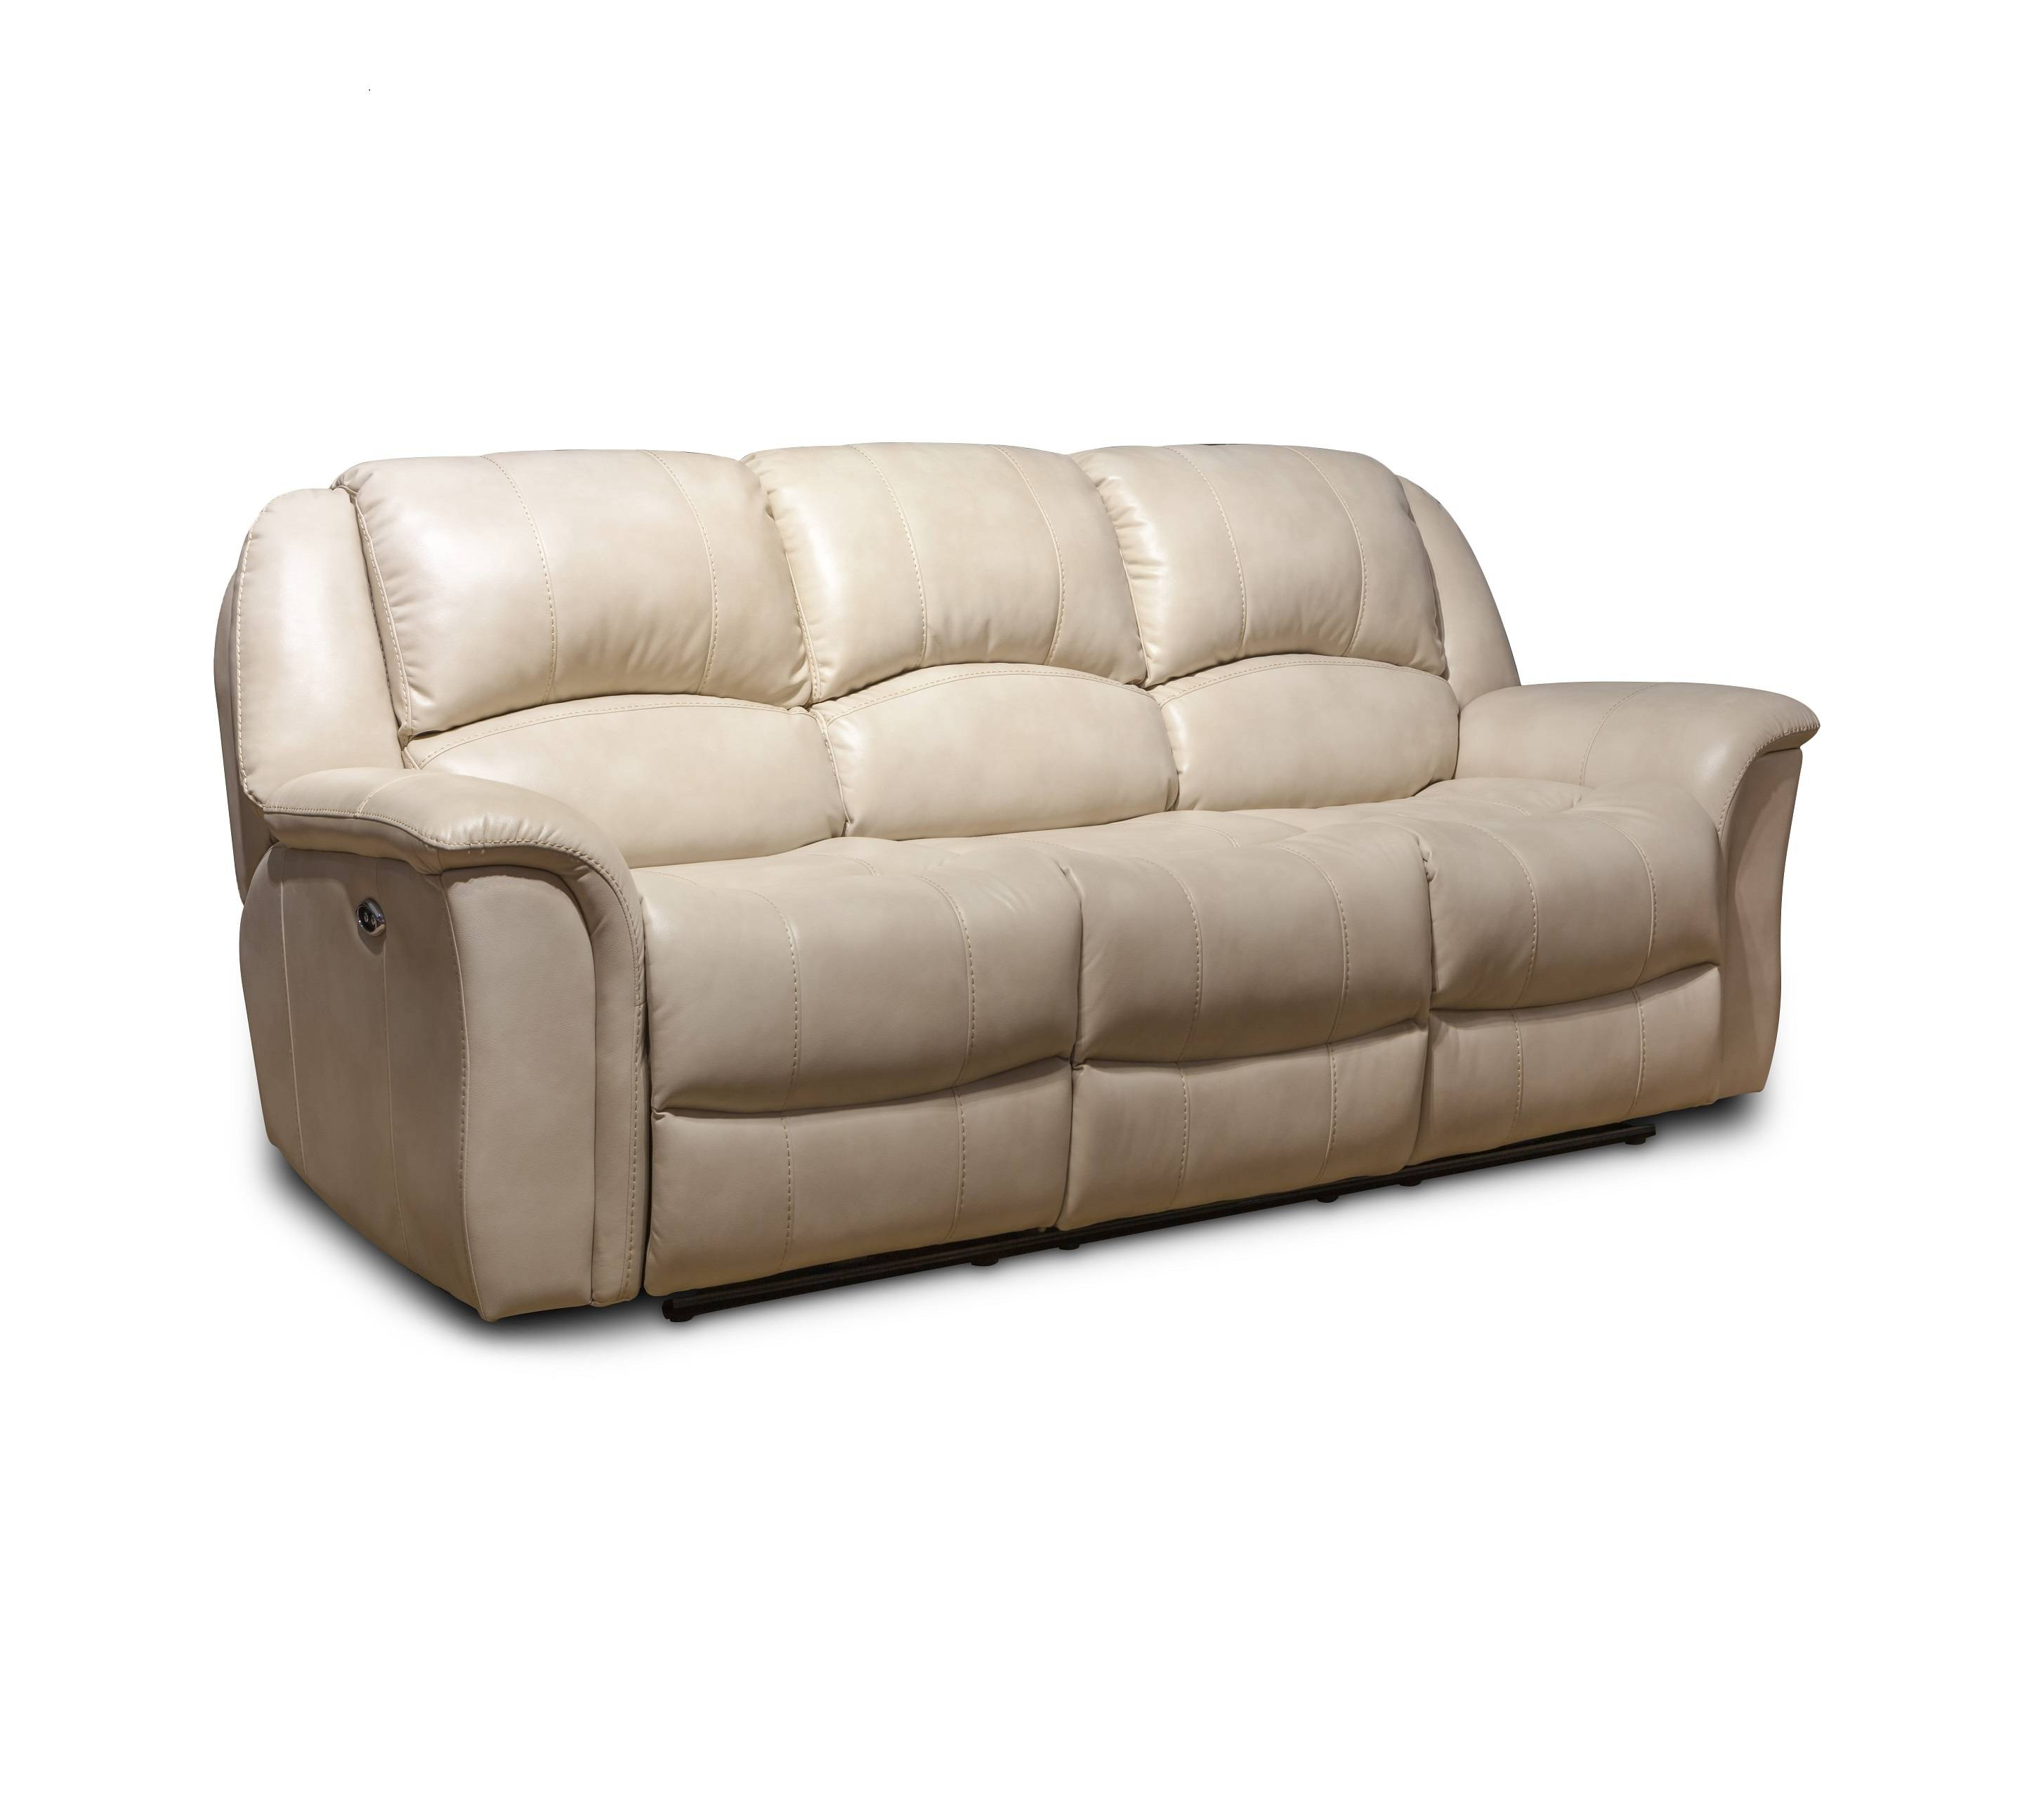 European style living room sofa zero gravity massage recliner